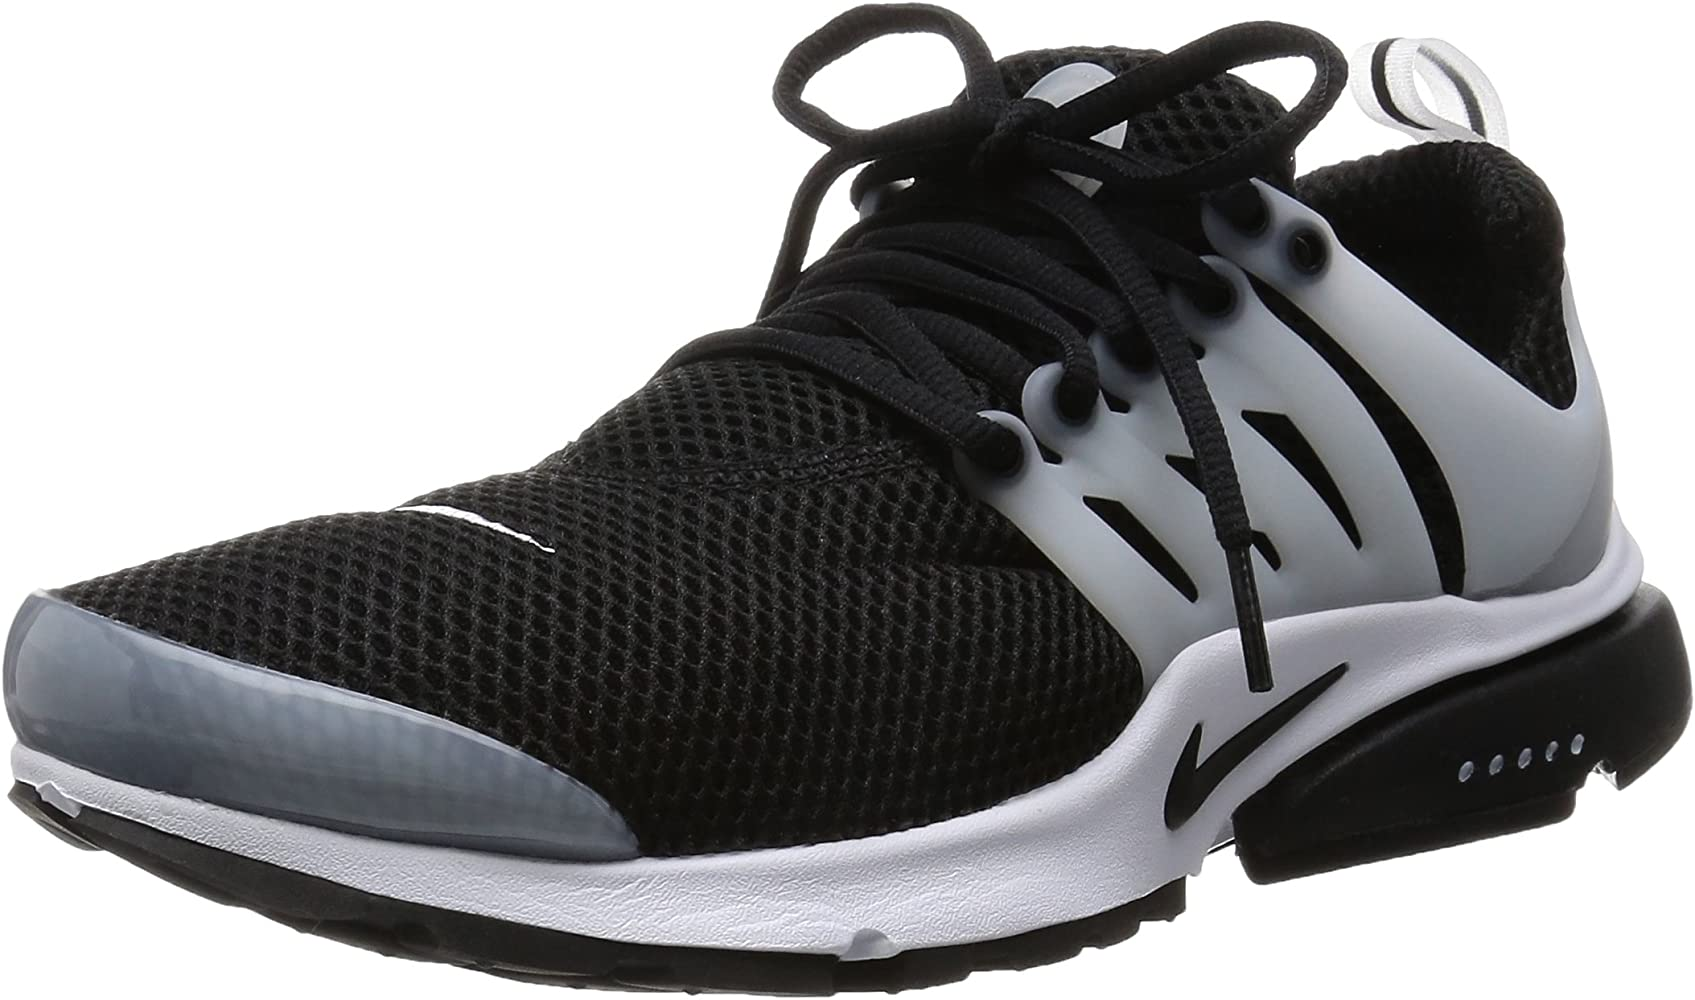 Men's 848132 010 Trail Running Shoes